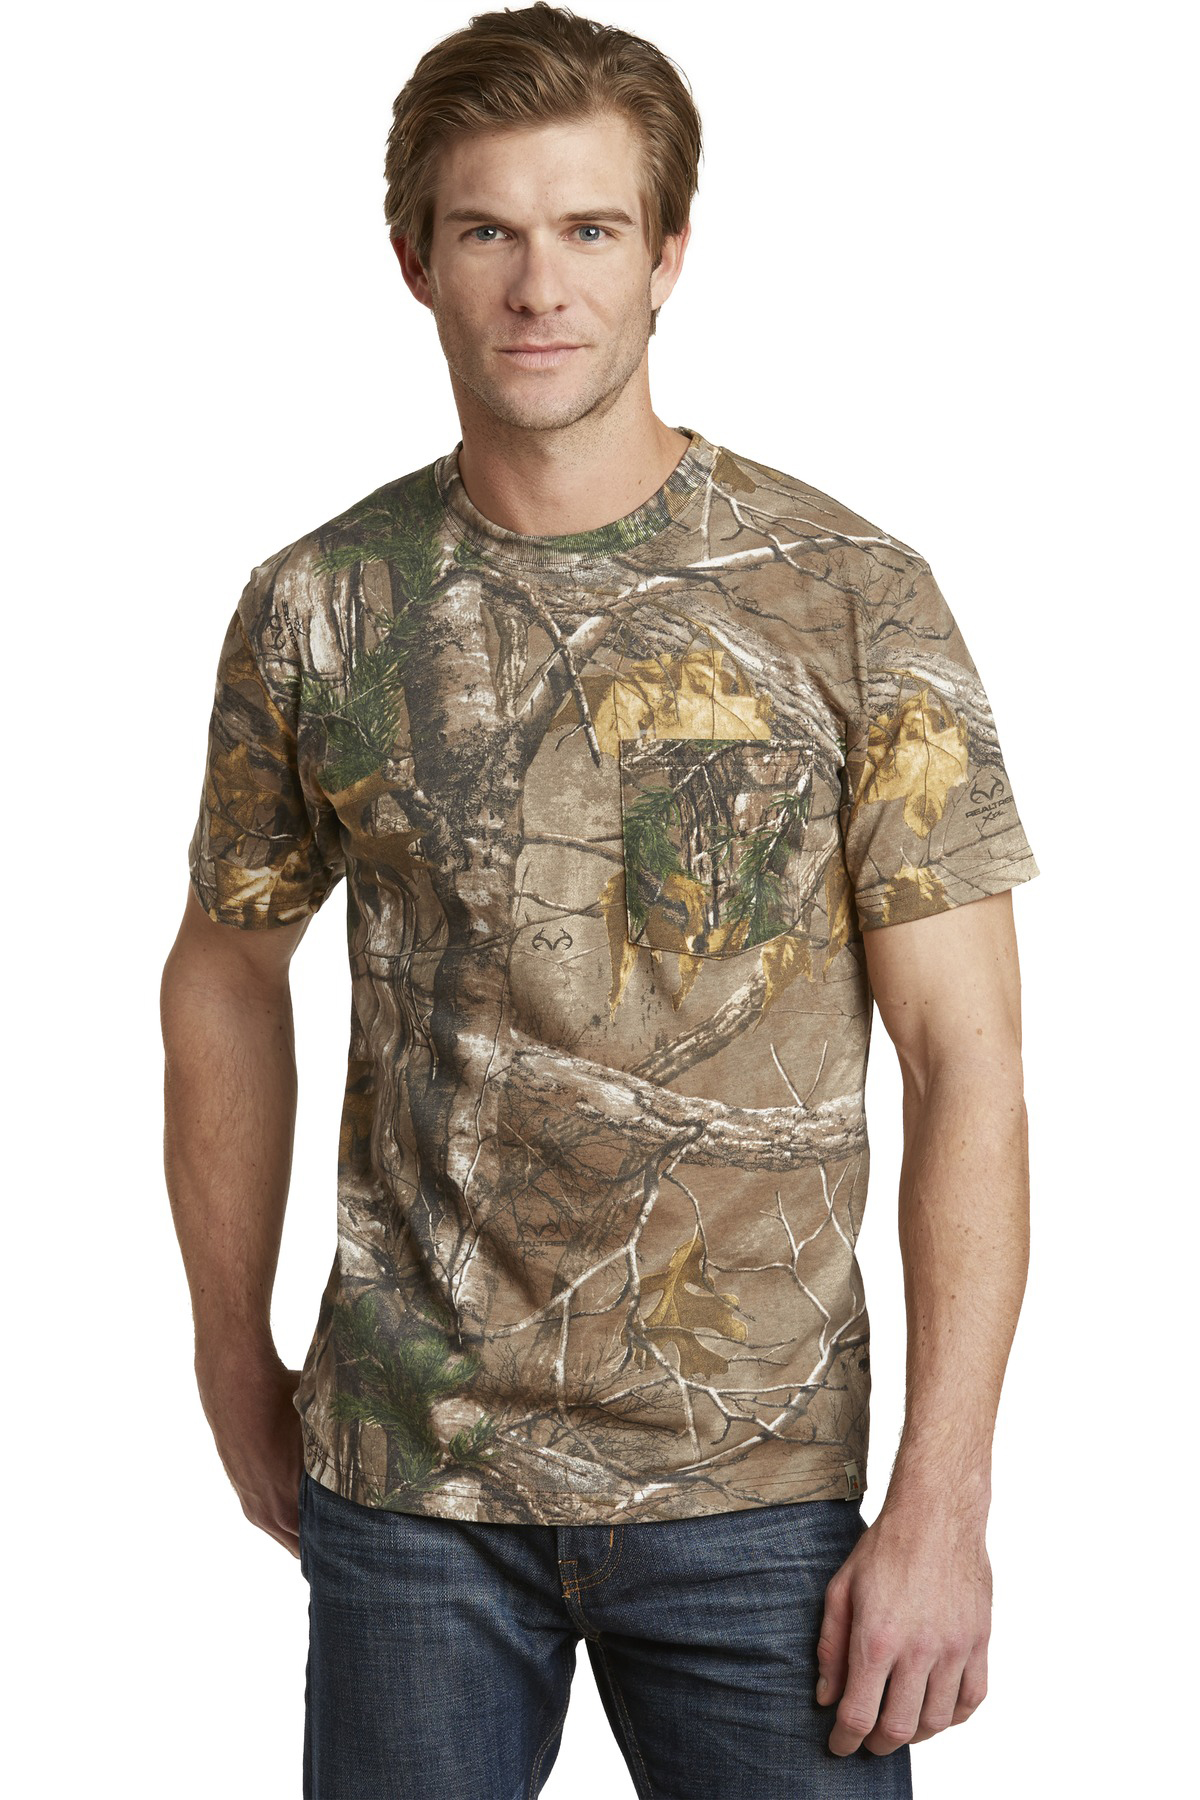 314cb1d9 Russell Outdoors™ - Realtree® Explorer 100% Cotton T-Shirt with Pocket